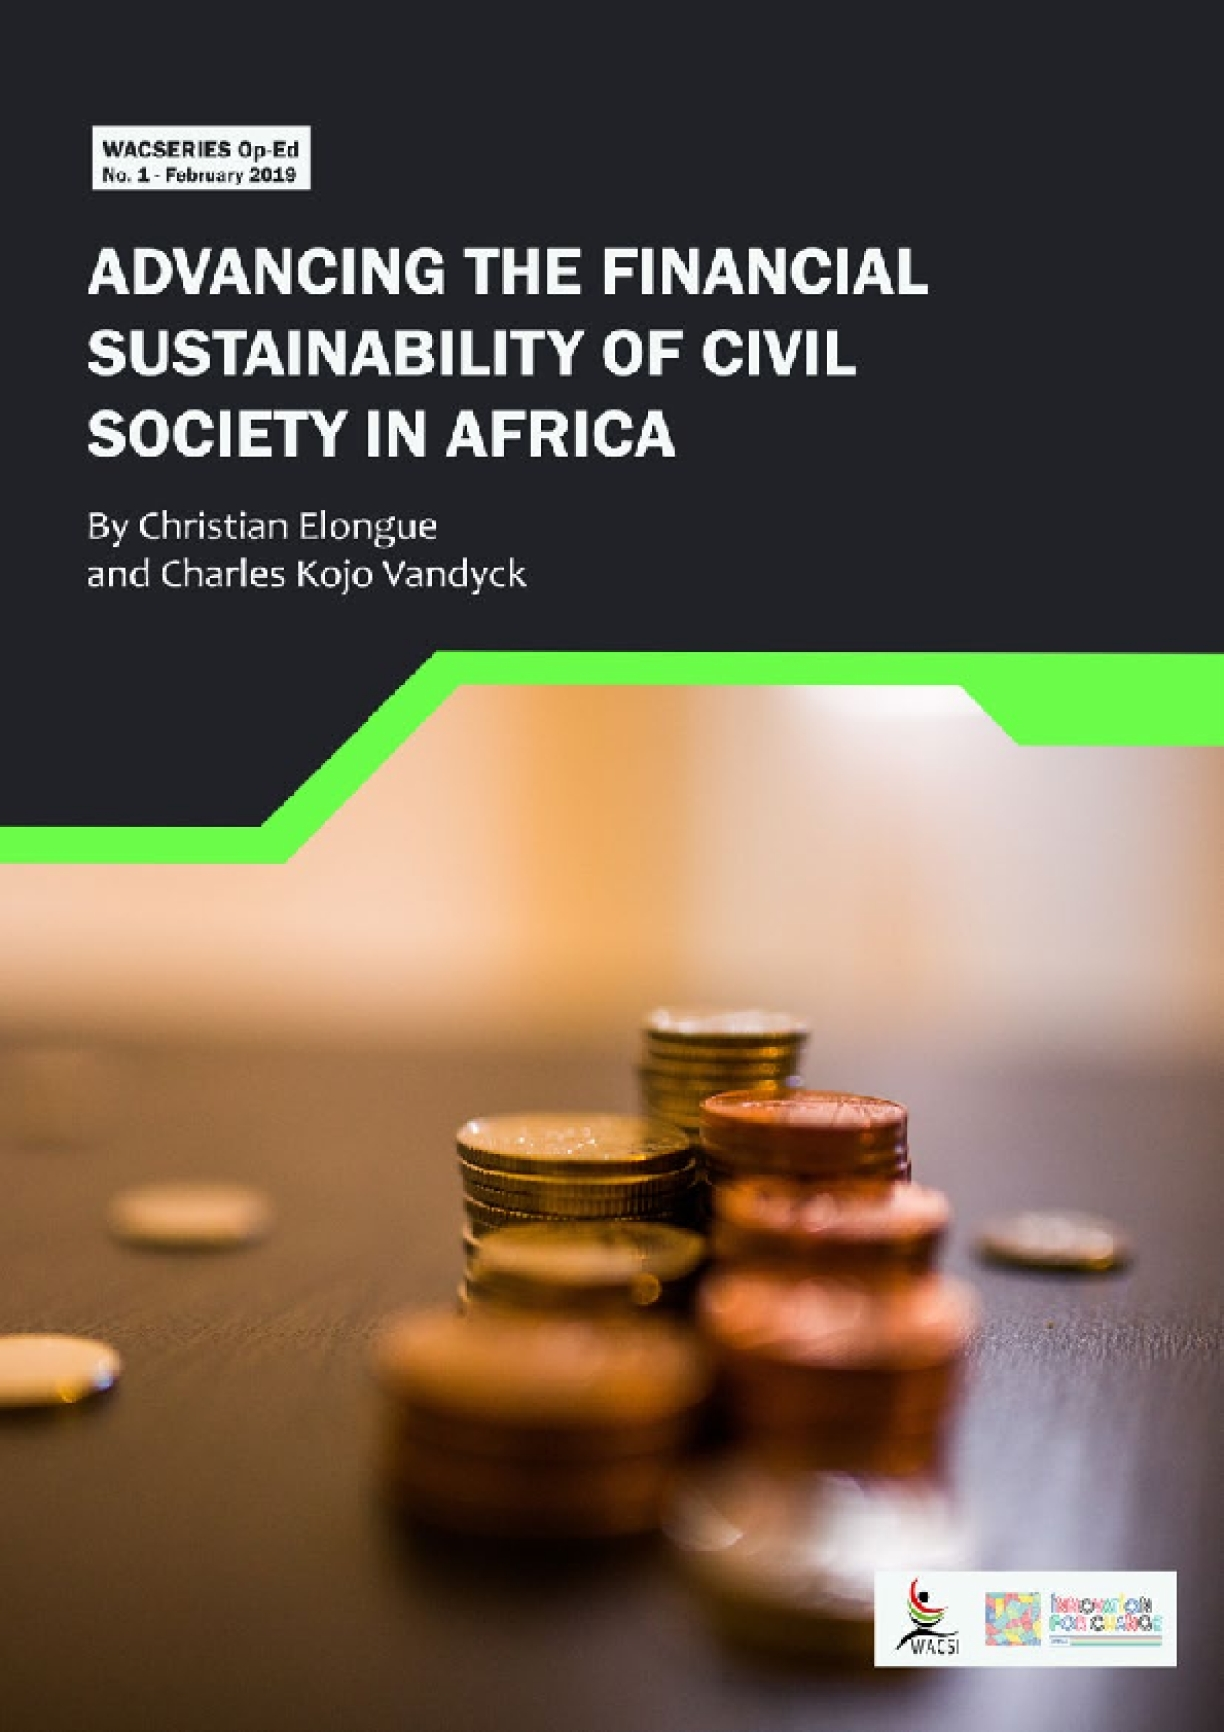 Advancing The Financial Sustainability of Civil Society in Africa